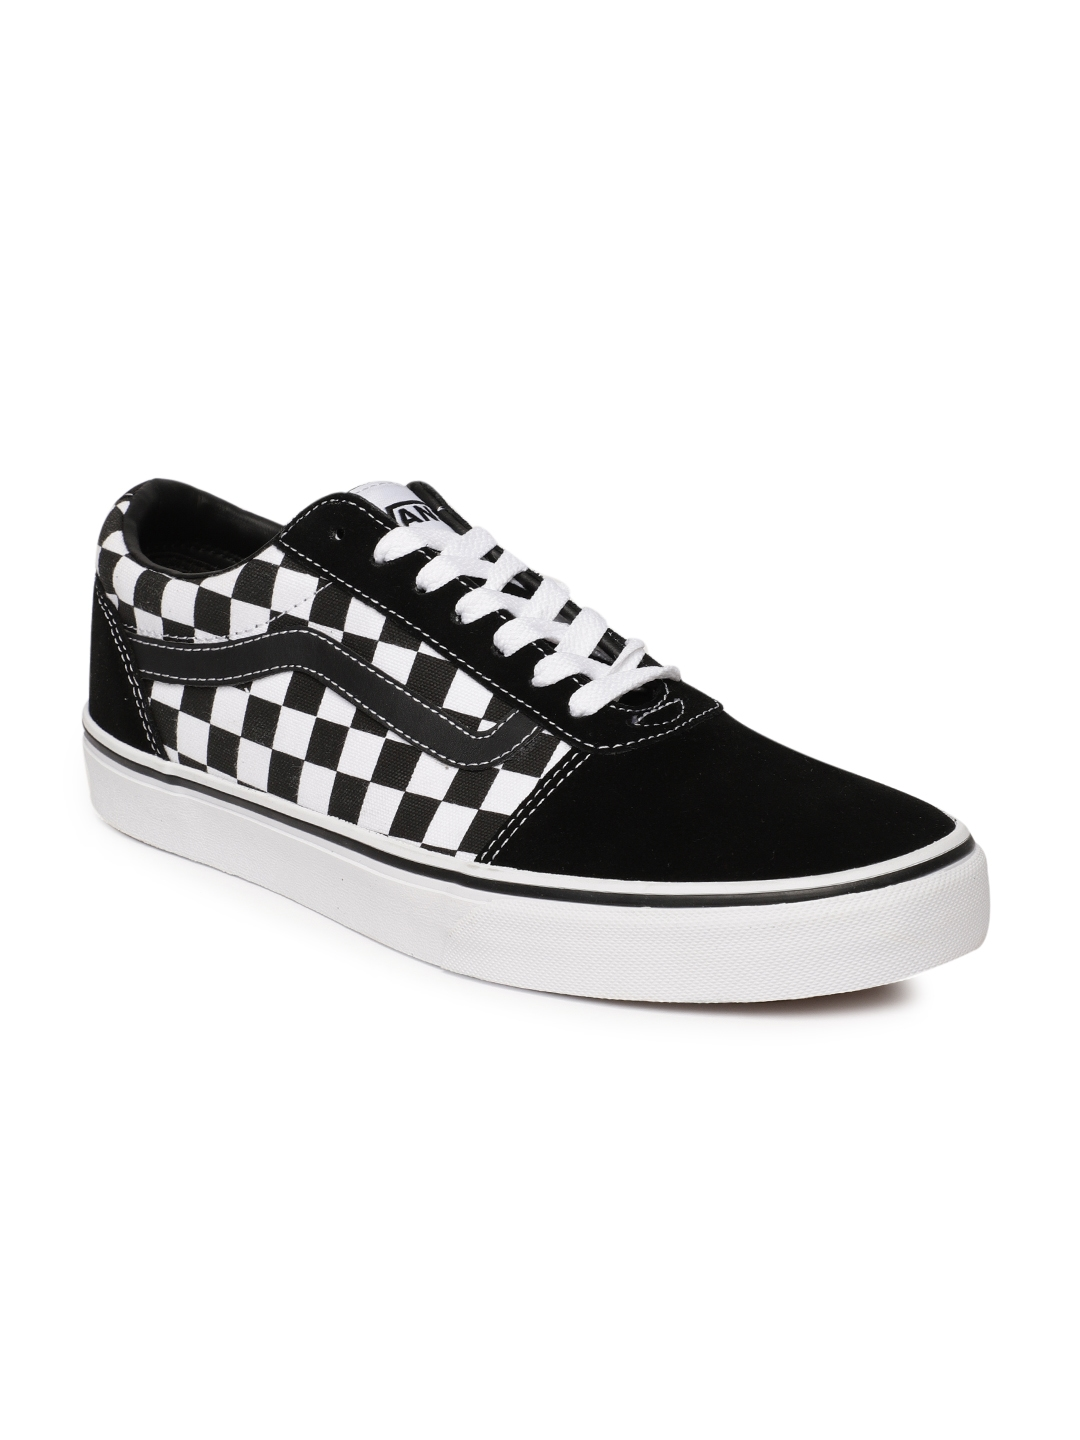 c340b6a4a Buy Vans Men Black & White Ward Checked Sneakers - Casual Shoes for ...